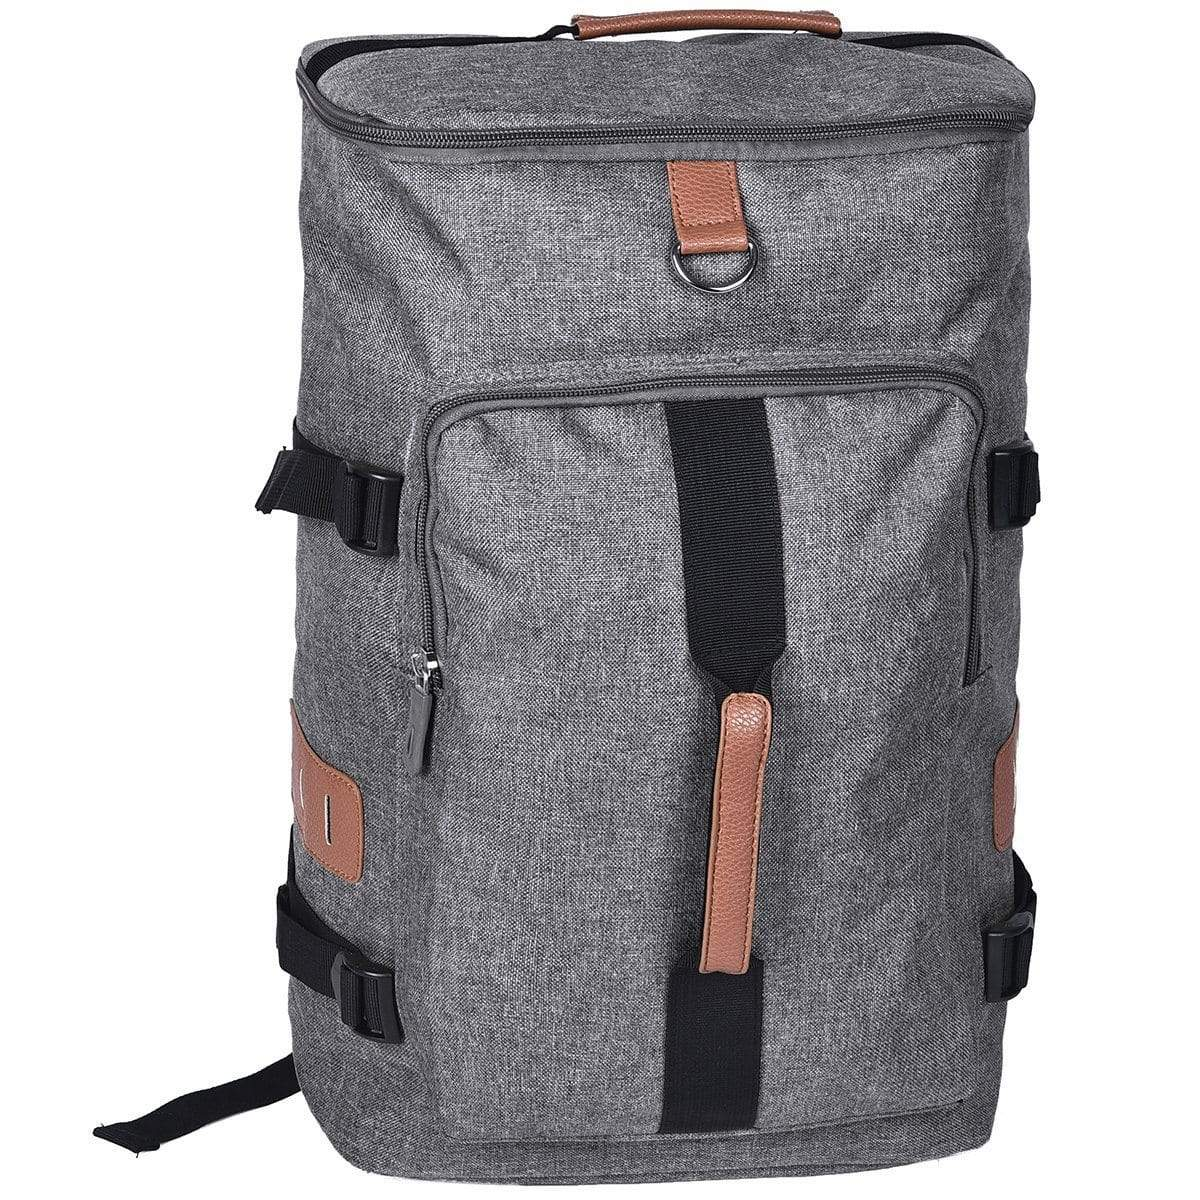 Border Convertible Backpack and Duffle Bag - Grey